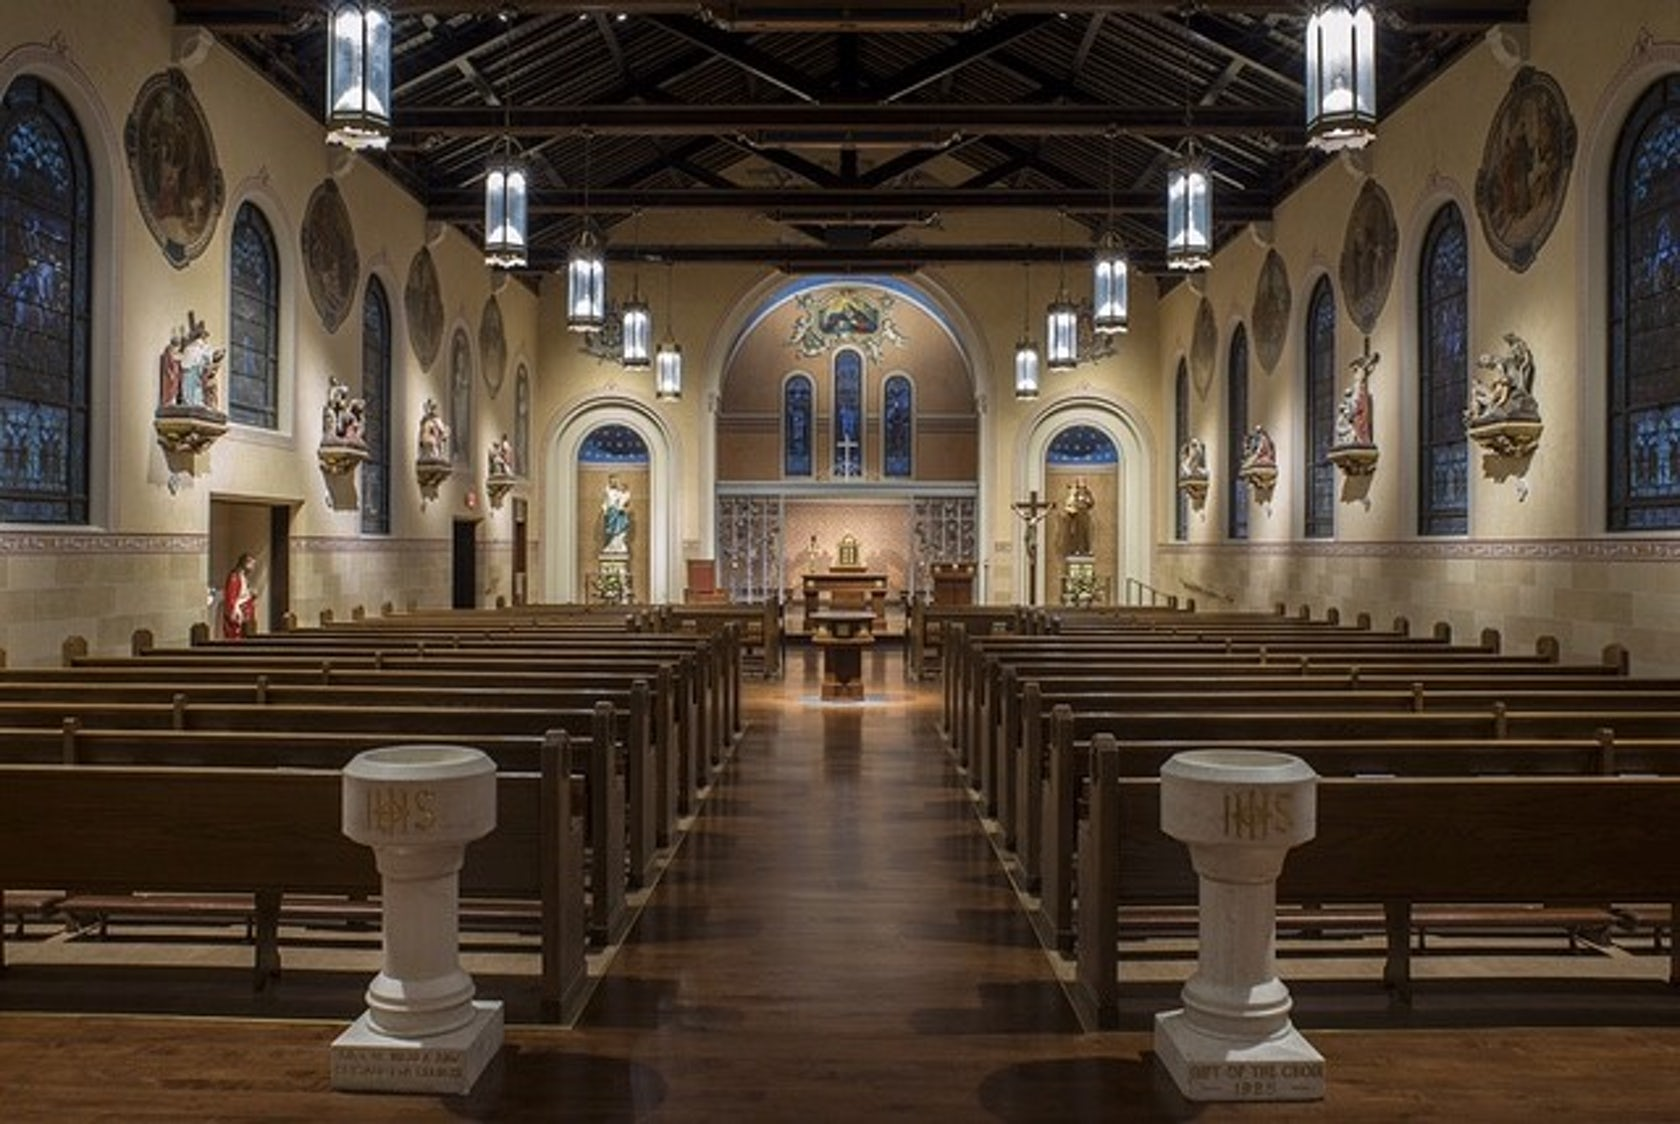 Bank Of The West Auto Loan >> St. Anthony's Church - Architizer